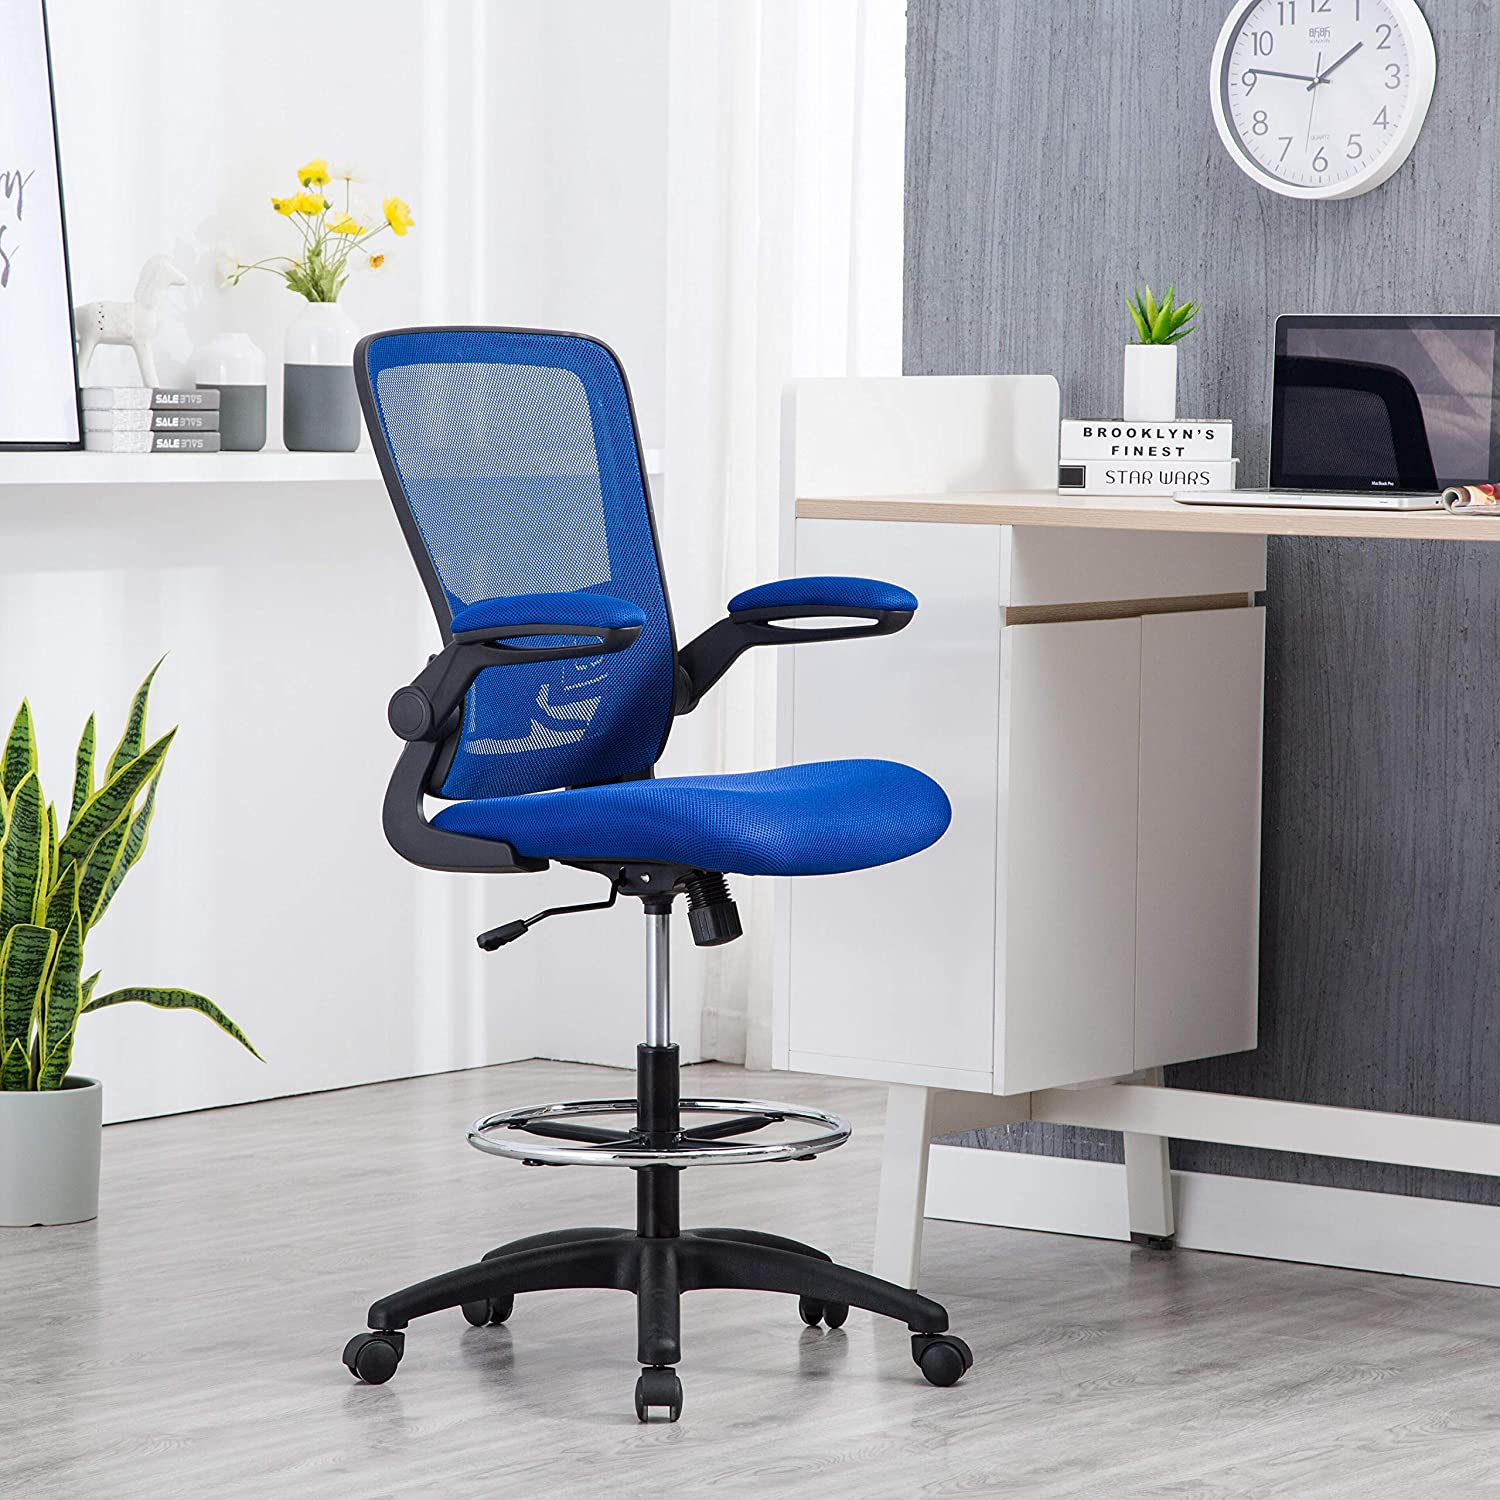 Amazon Com Naomi Home Serena Mesh Drafting Chair Tall Office Chair For Standing Desk Blue Black Furniture Decor